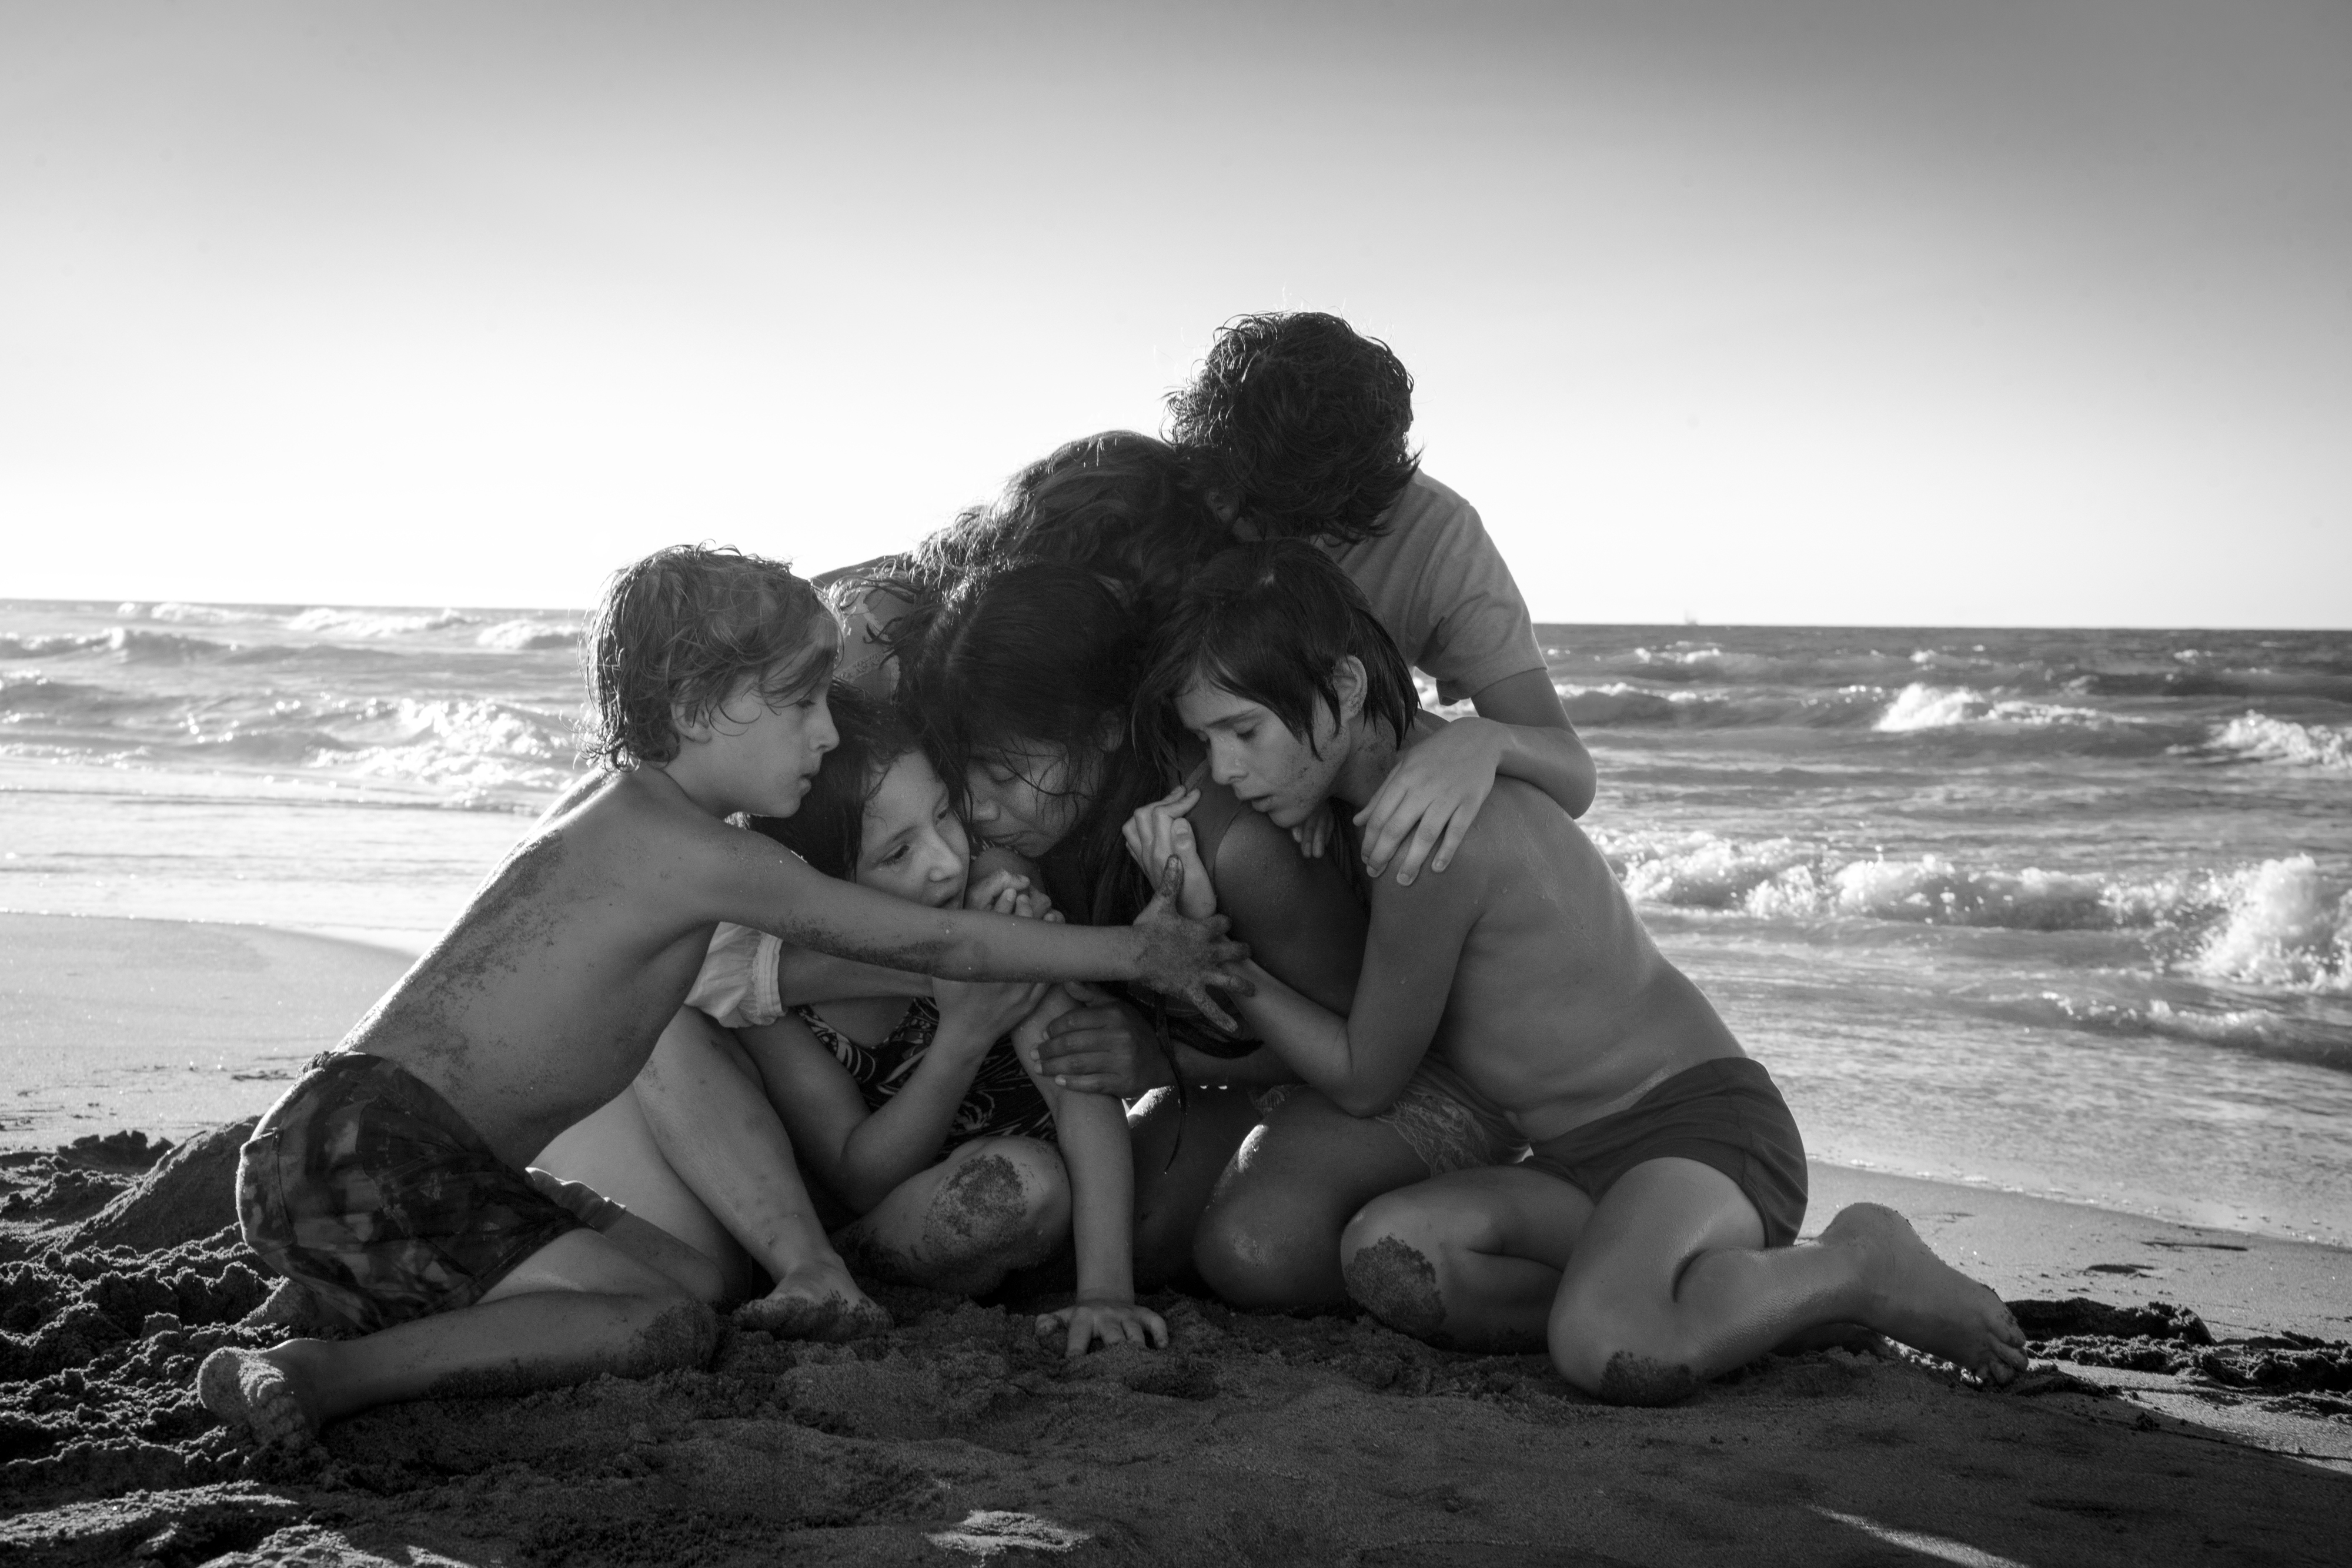 Roma would be an unusual Best Picture winner. Here's why it deserves the honor.